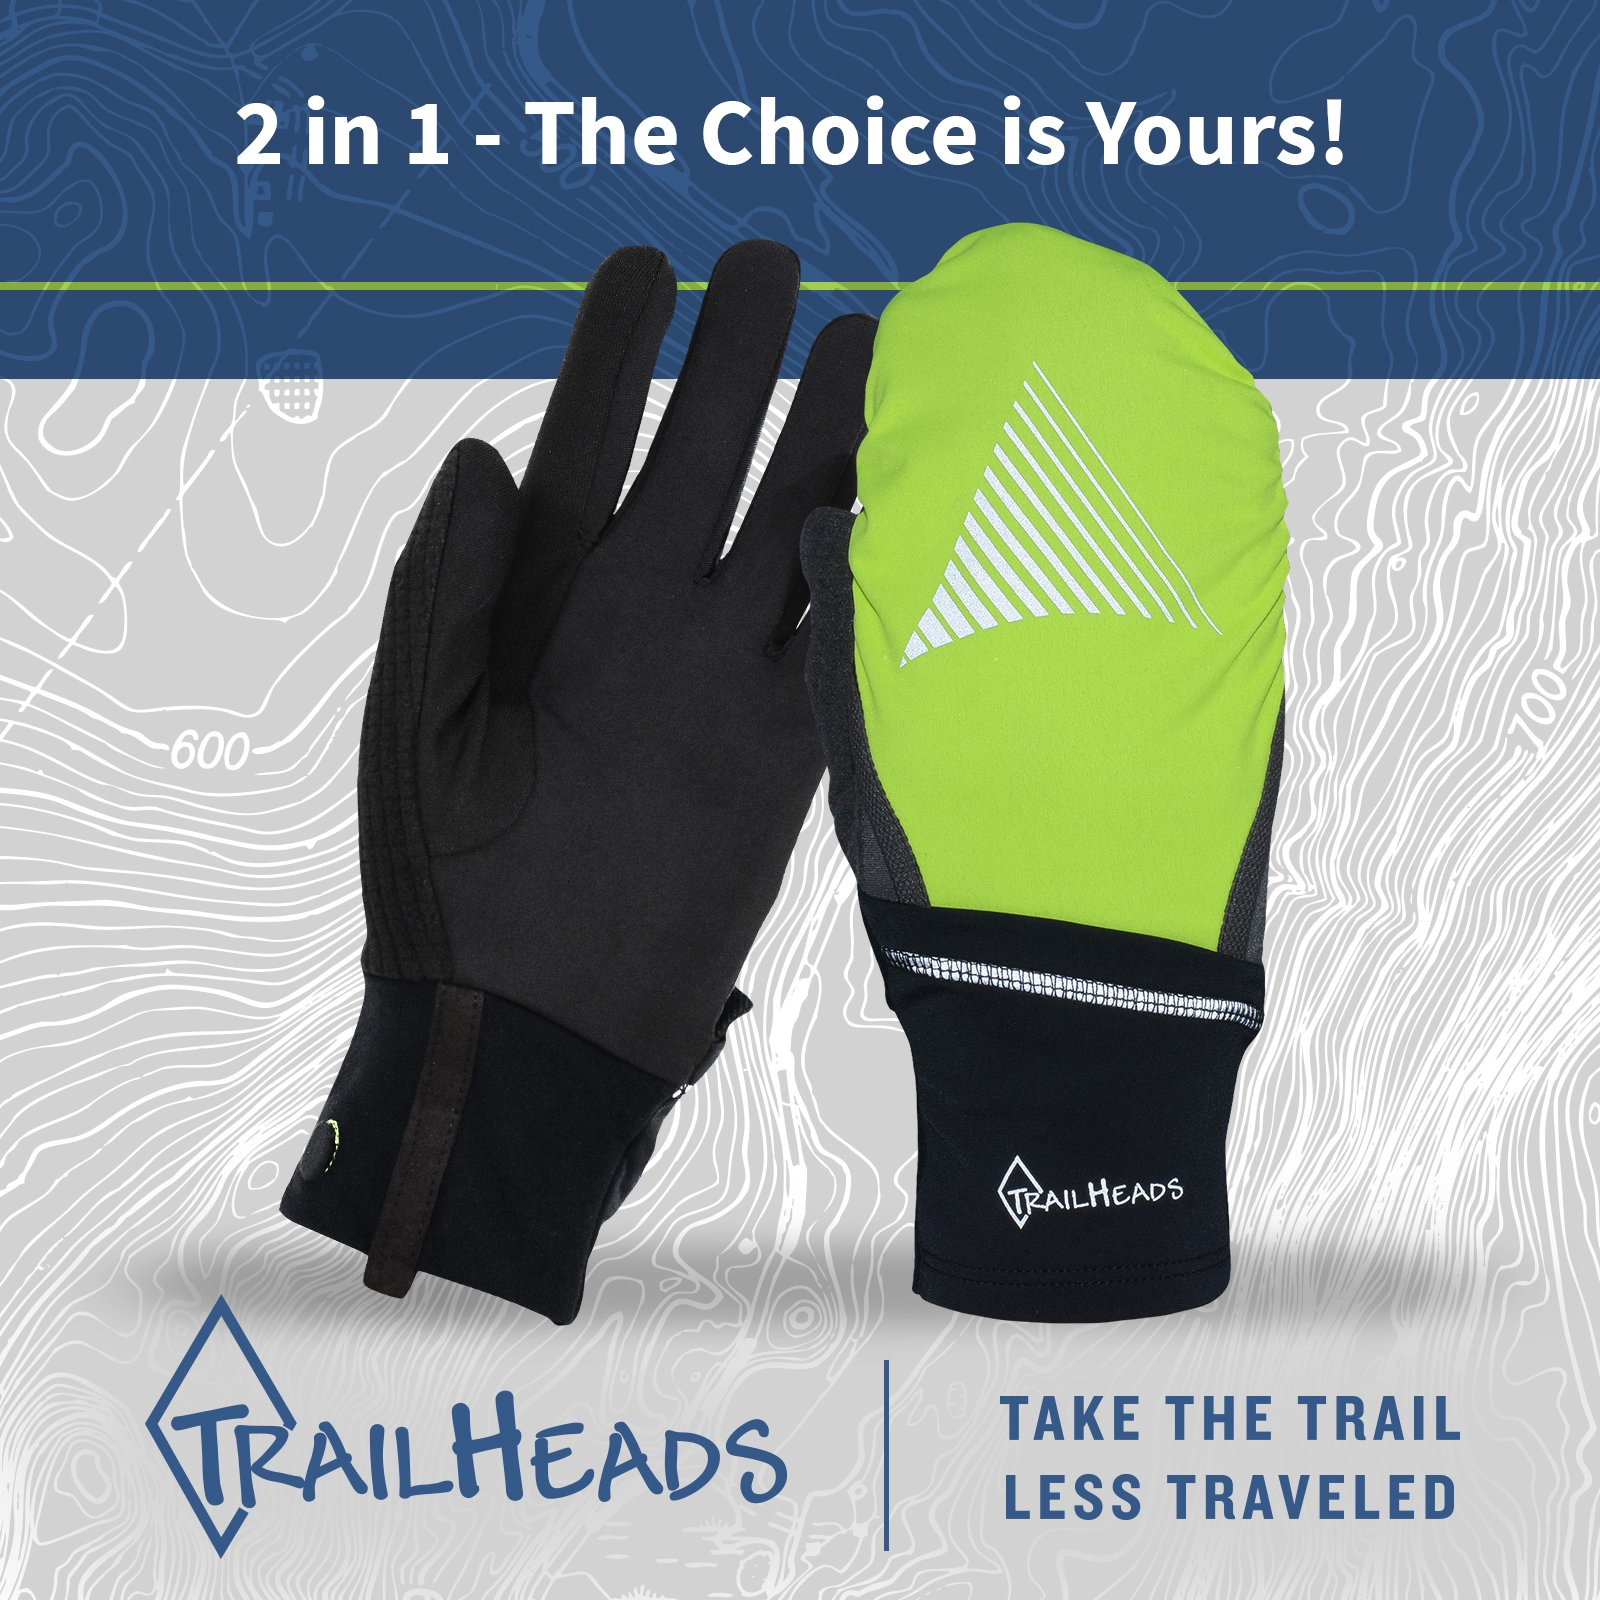 TrailHeads Convertible Running Gloves - black/hi-vis (small/medium) by TrailHeads (Image #5)